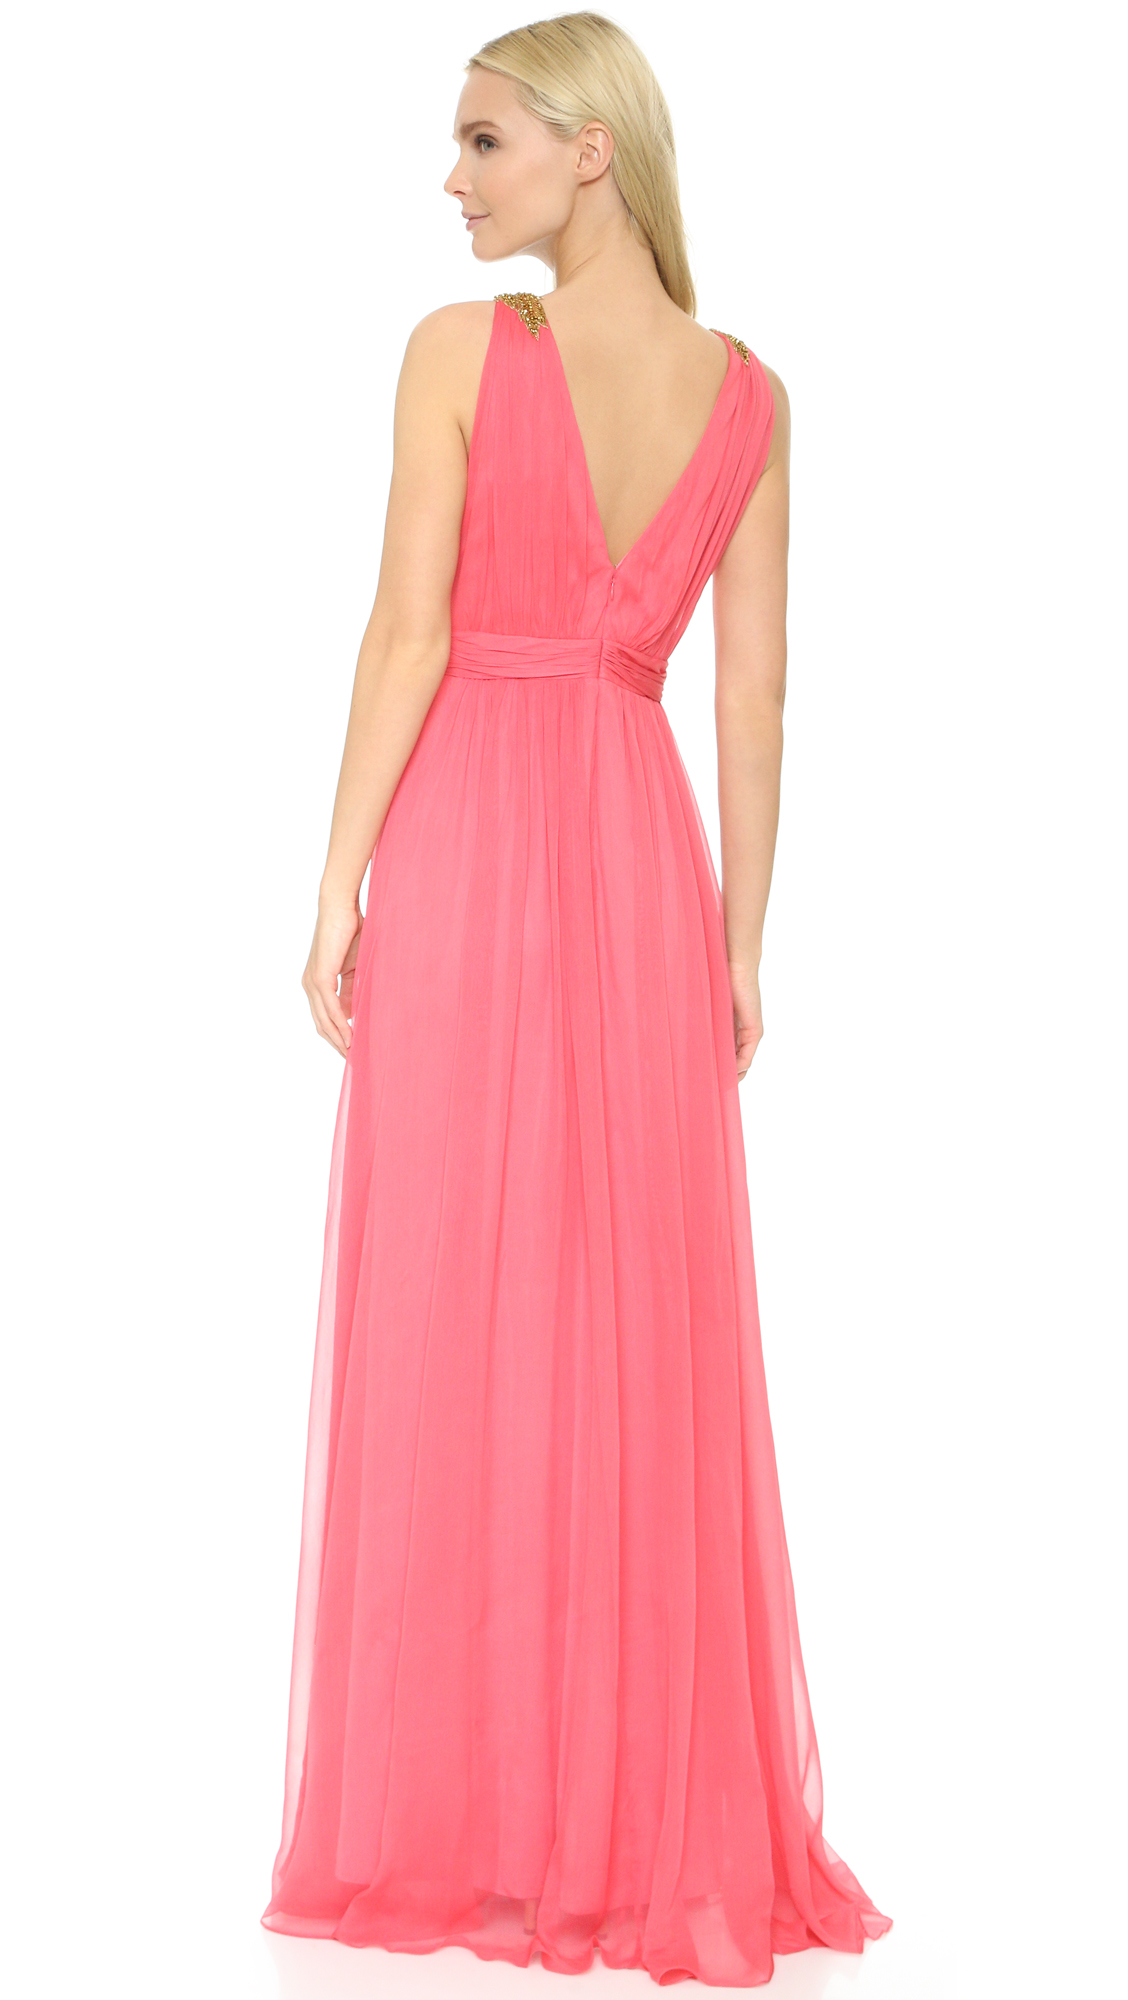 Notte by marchesa Plunge Gown in Pink  Lyst